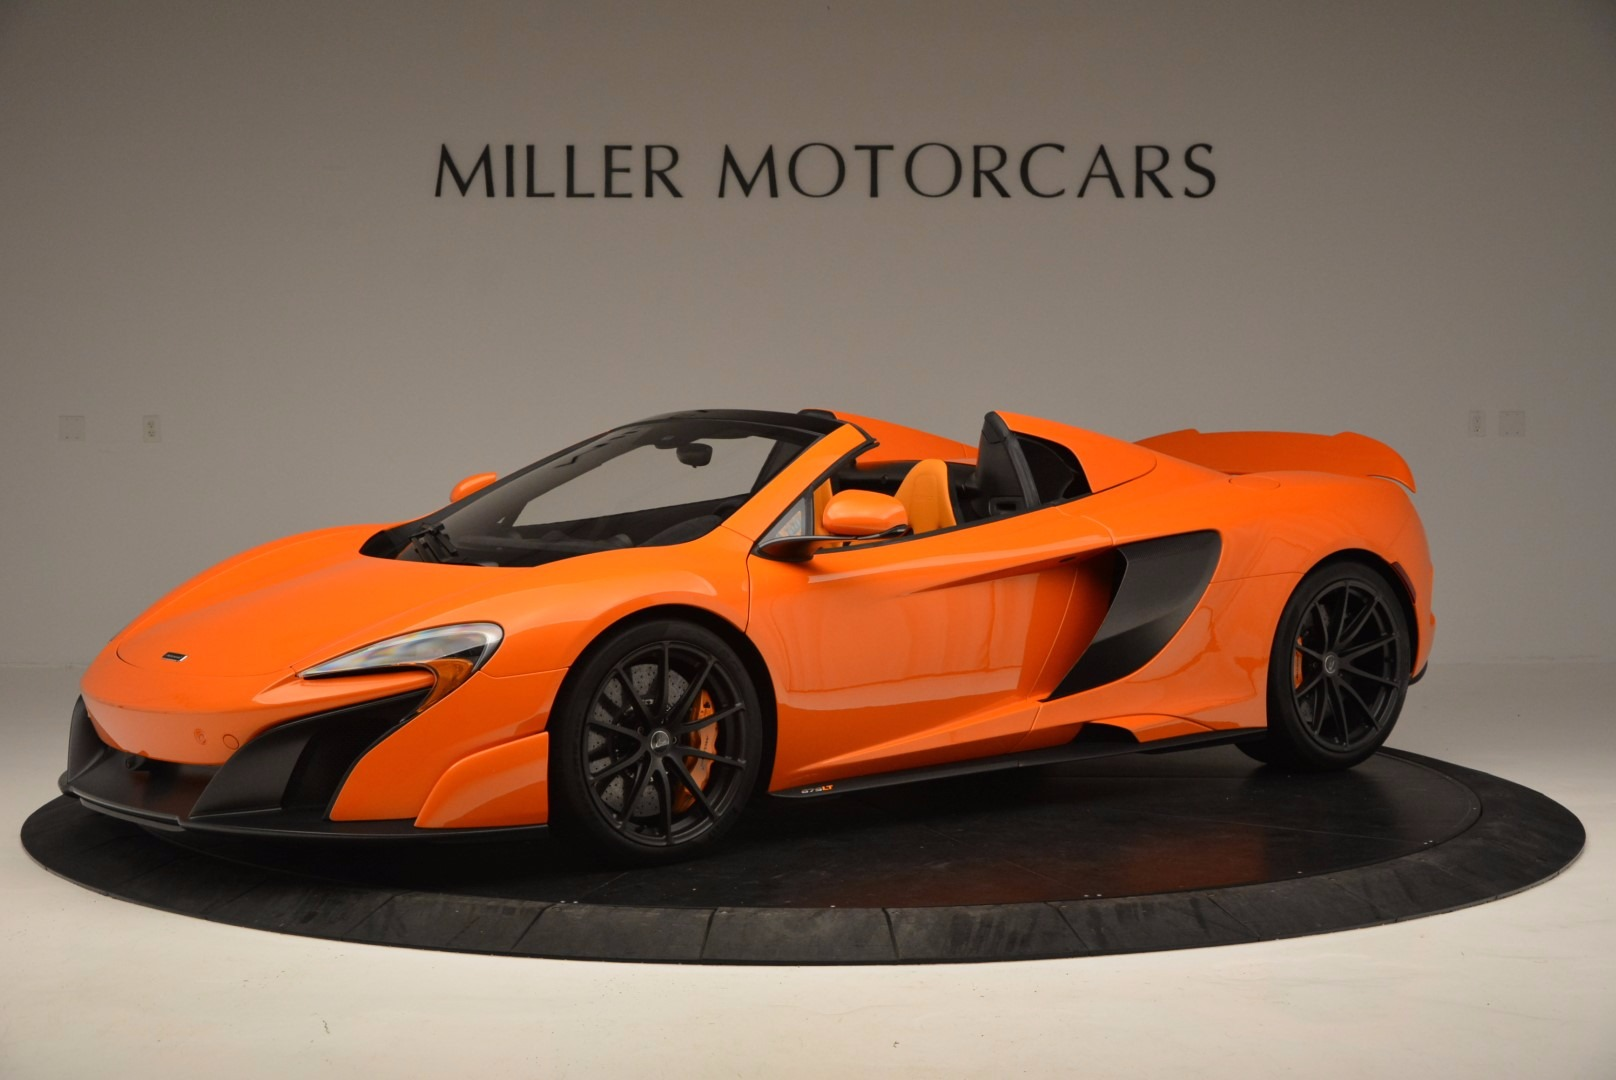 Used 2016 McLaren 675LT Spider Convertible for sale Sold at McLaren Greenwich in Greenwich CT 06830 1